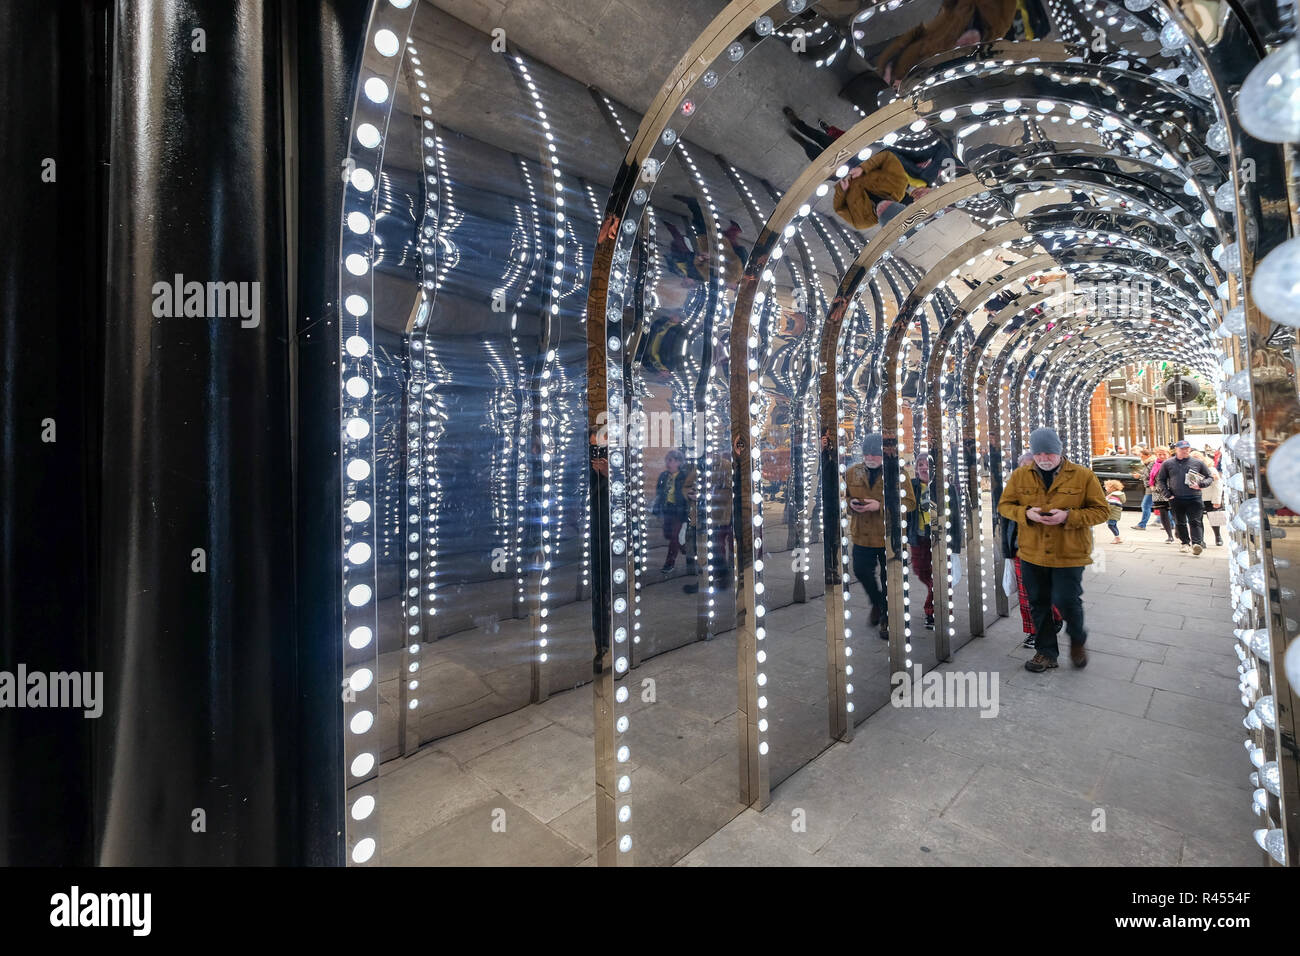 Covent Garden, London, UK.  25th November 2018. The passage to Conduit Court is covered with mirrors and lights. Stock Photo